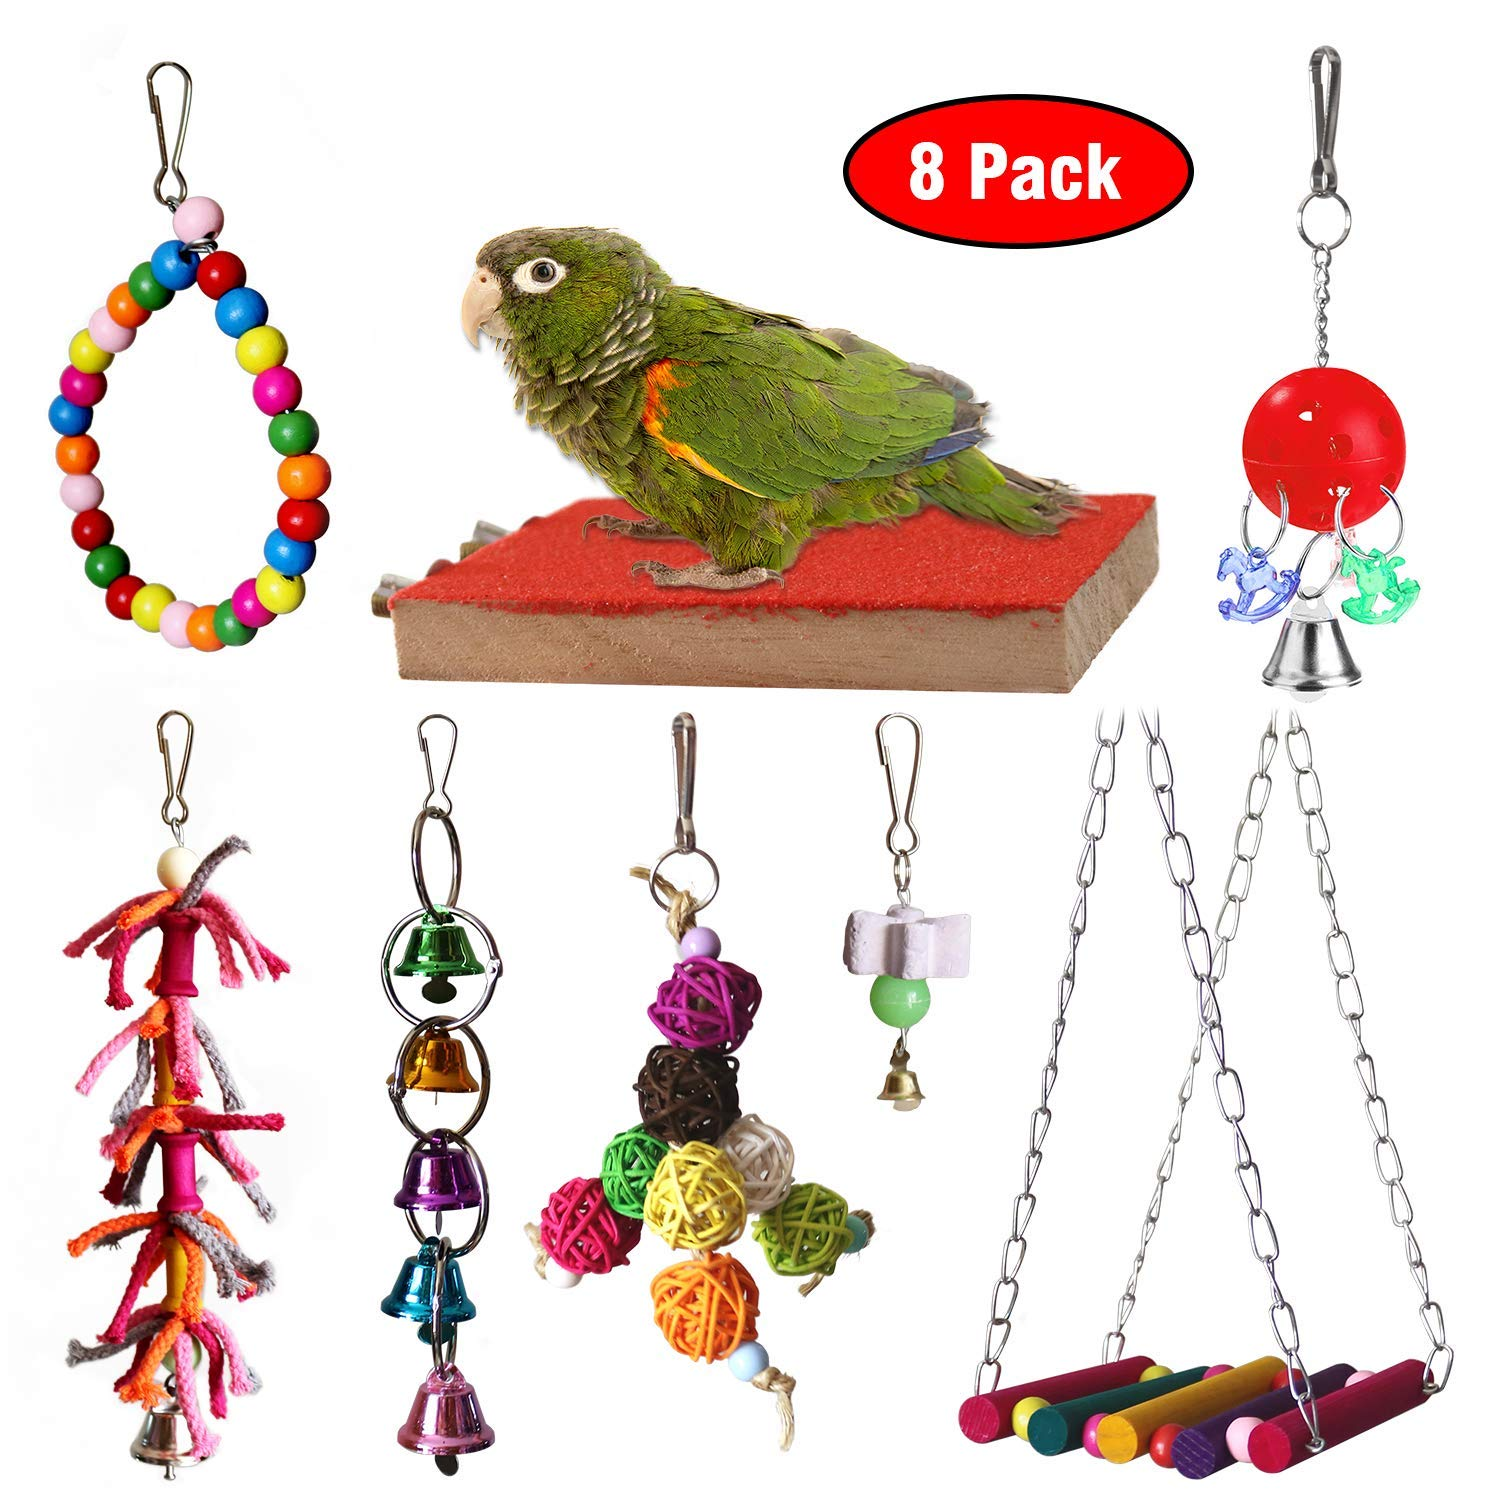 RYPET Bird Chewing Toy 8 Packs- Bird Parrot Toys Bird Hanging Bell Toy Pet Parrot Hammock Swing for Small Medium Birds by RYPET